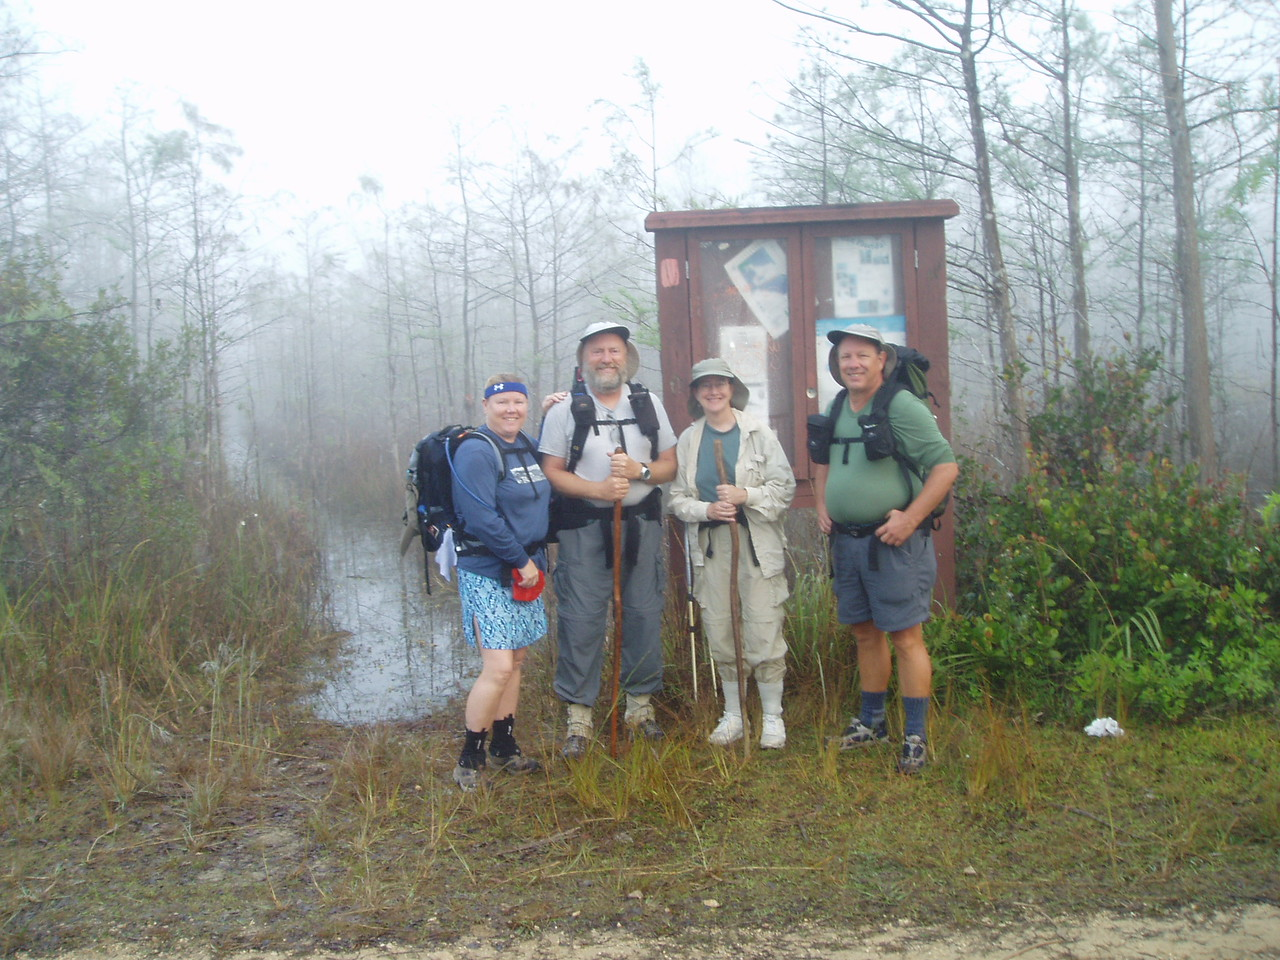 Sendoff at Loop Rd<br /> PHOTO CREDIT: Robert Coveney / Florida Trail Association